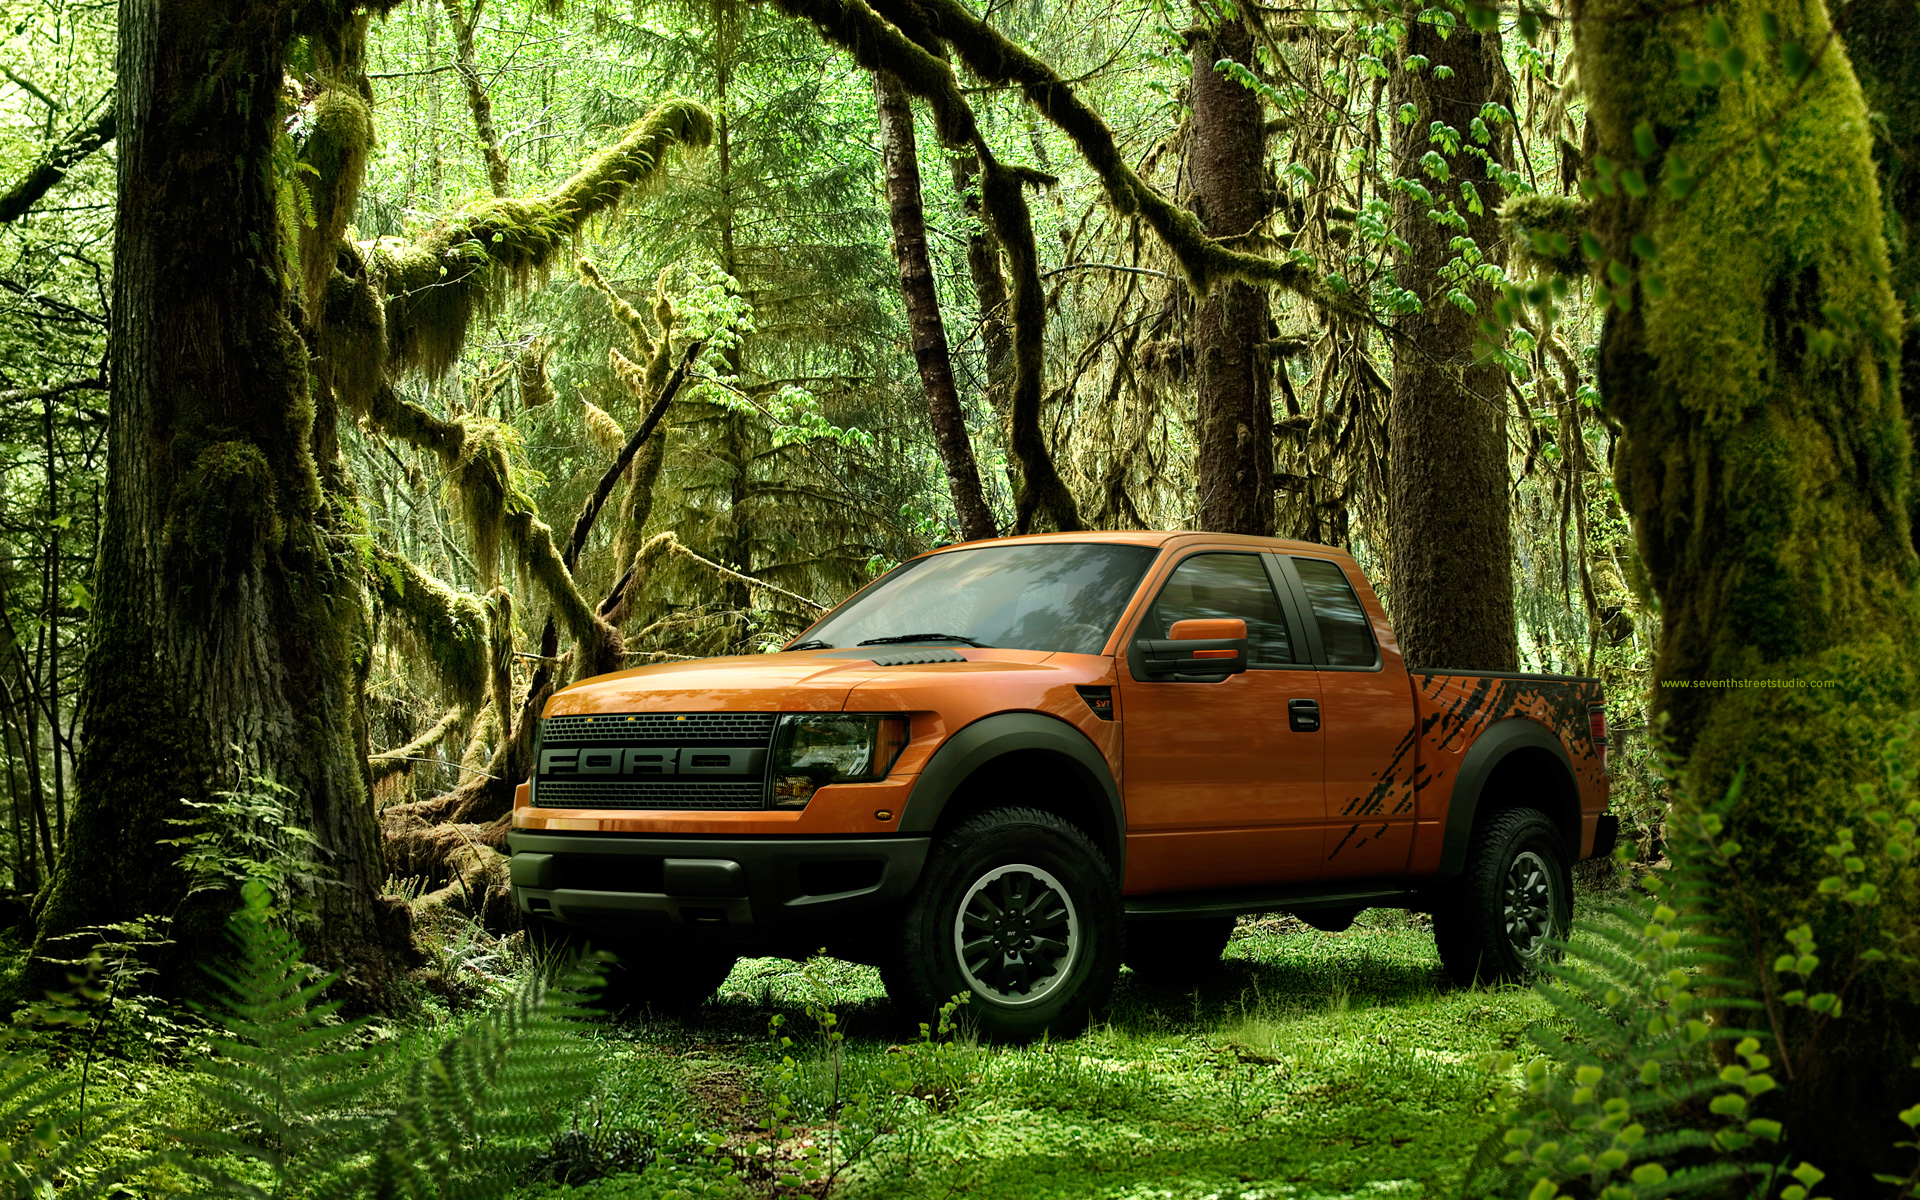 Ford Raptor 1792.44 Kb